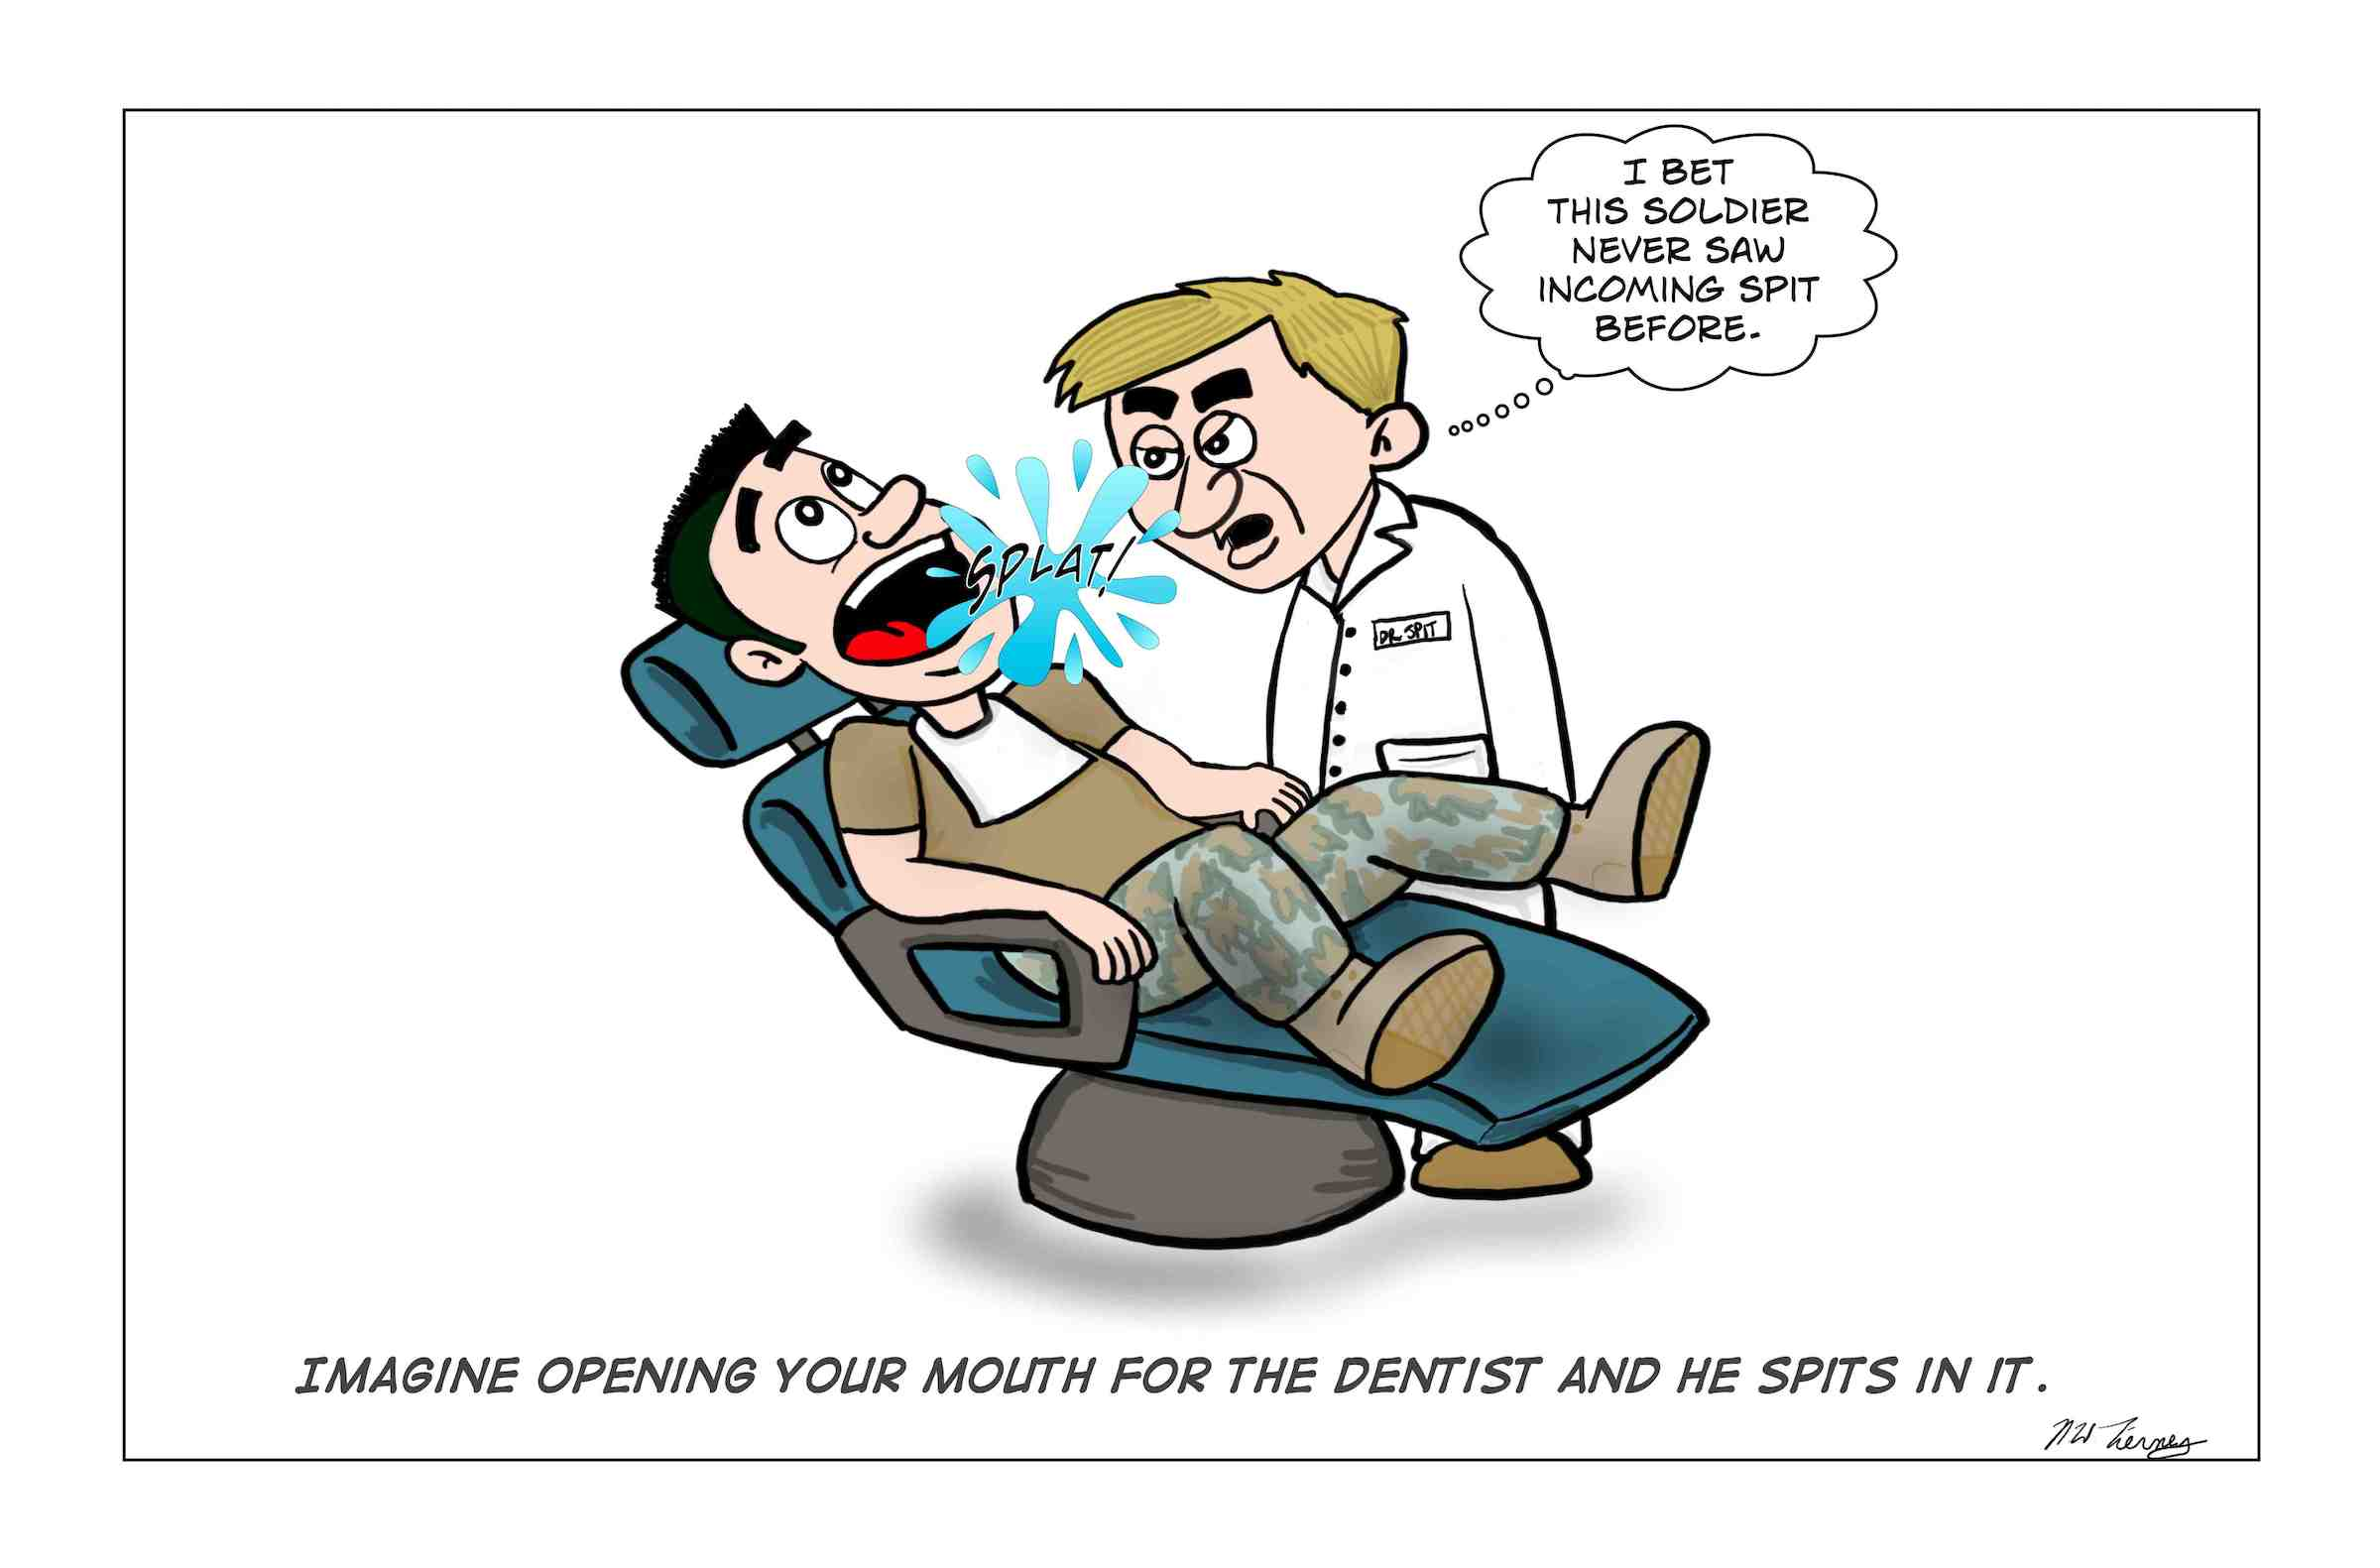 An Army dentist spits in the soldiers mouth.